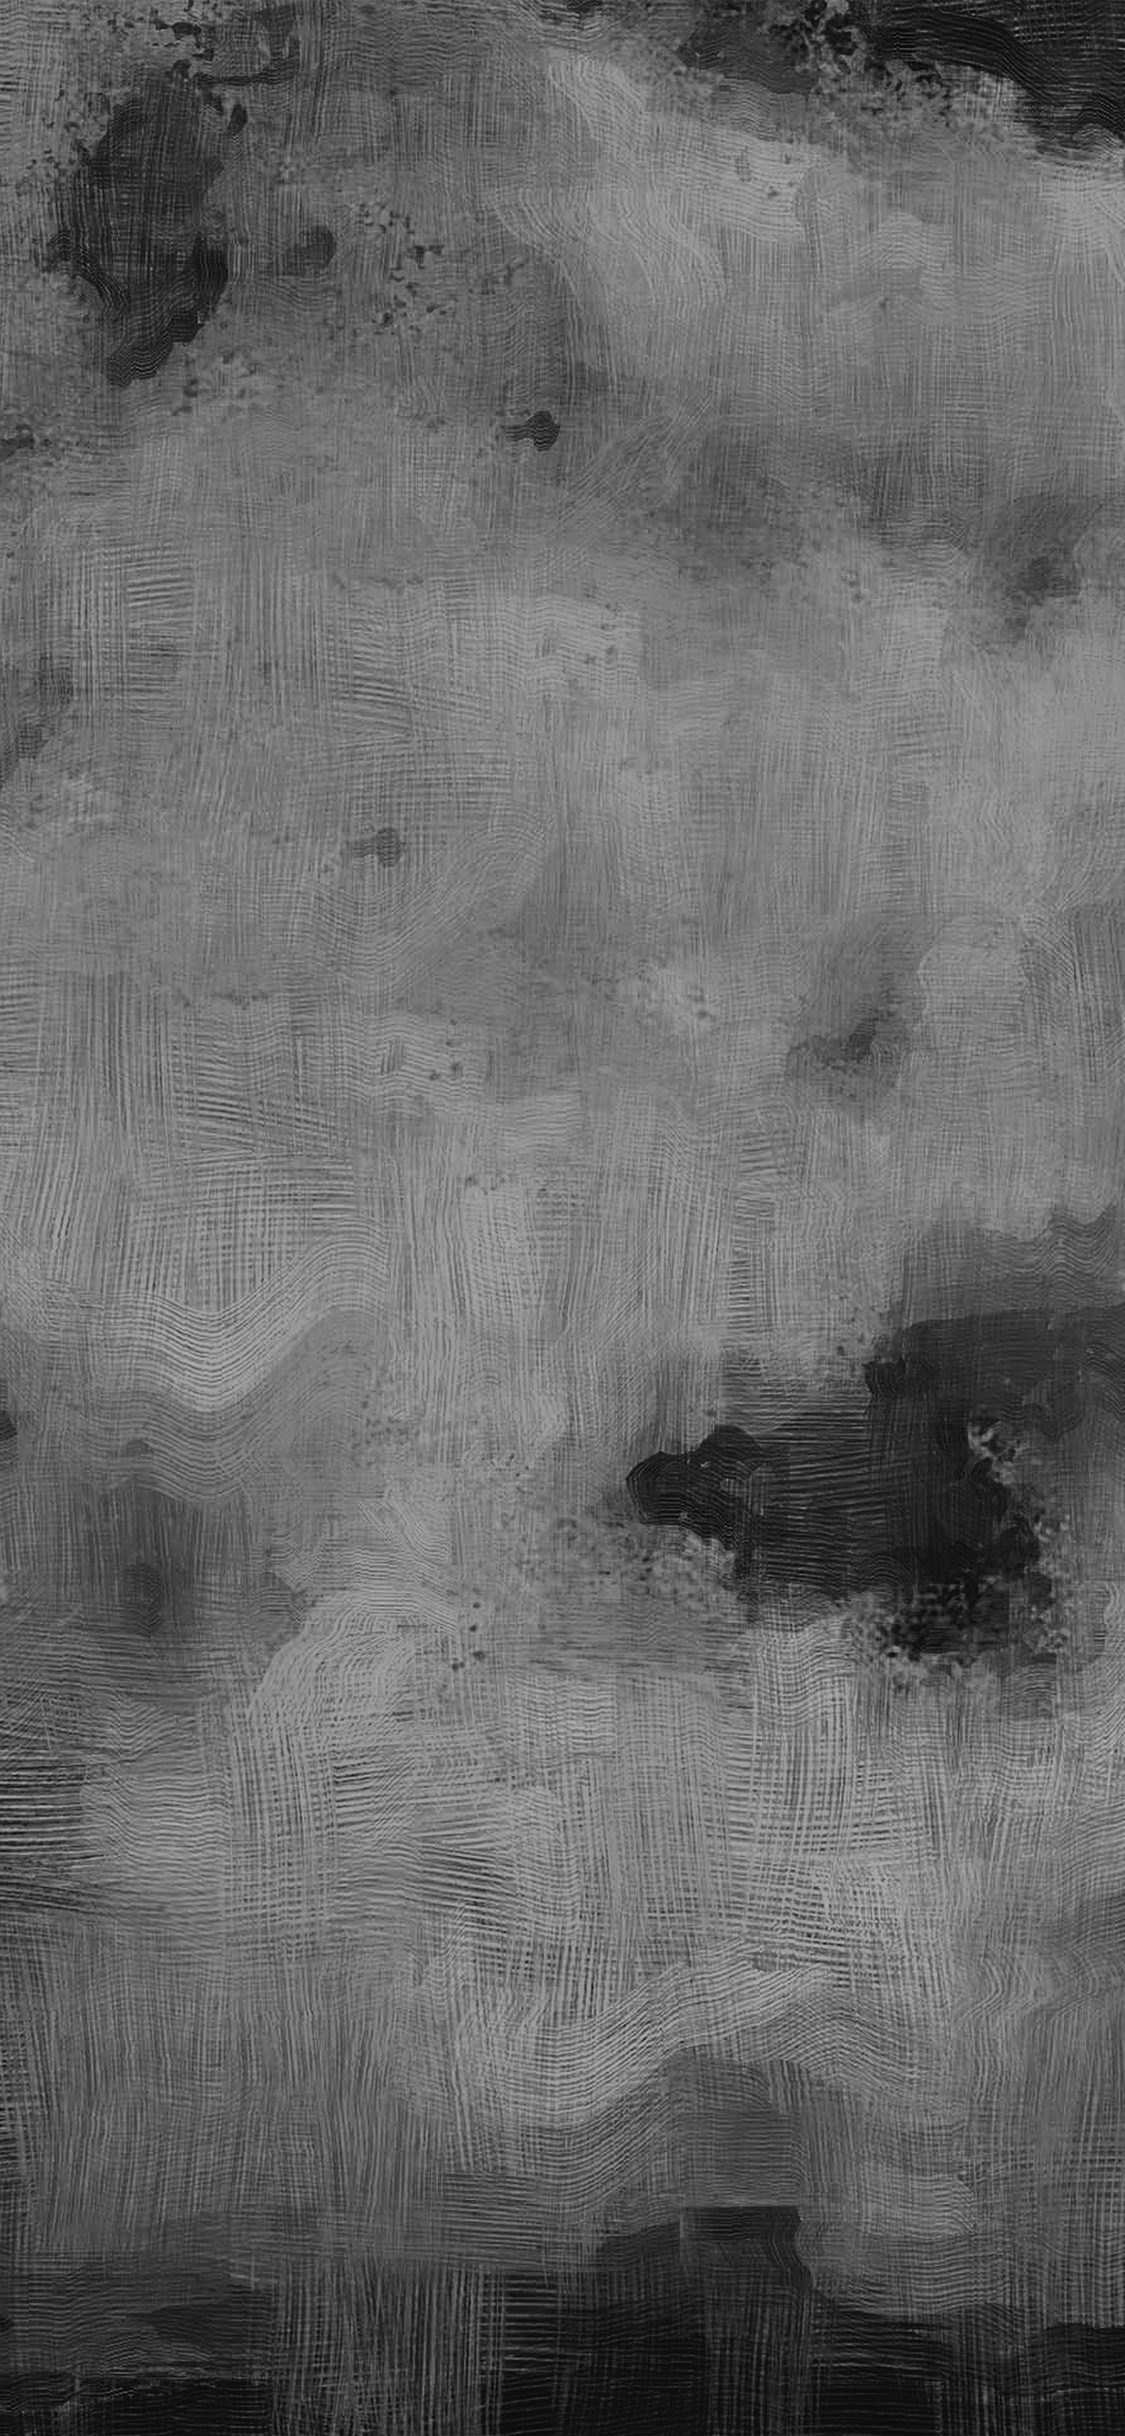 Papers Co Iphone Wallpaper Vl25 Samsung Galaxy Dark Texture Art Oil Painting Pattern